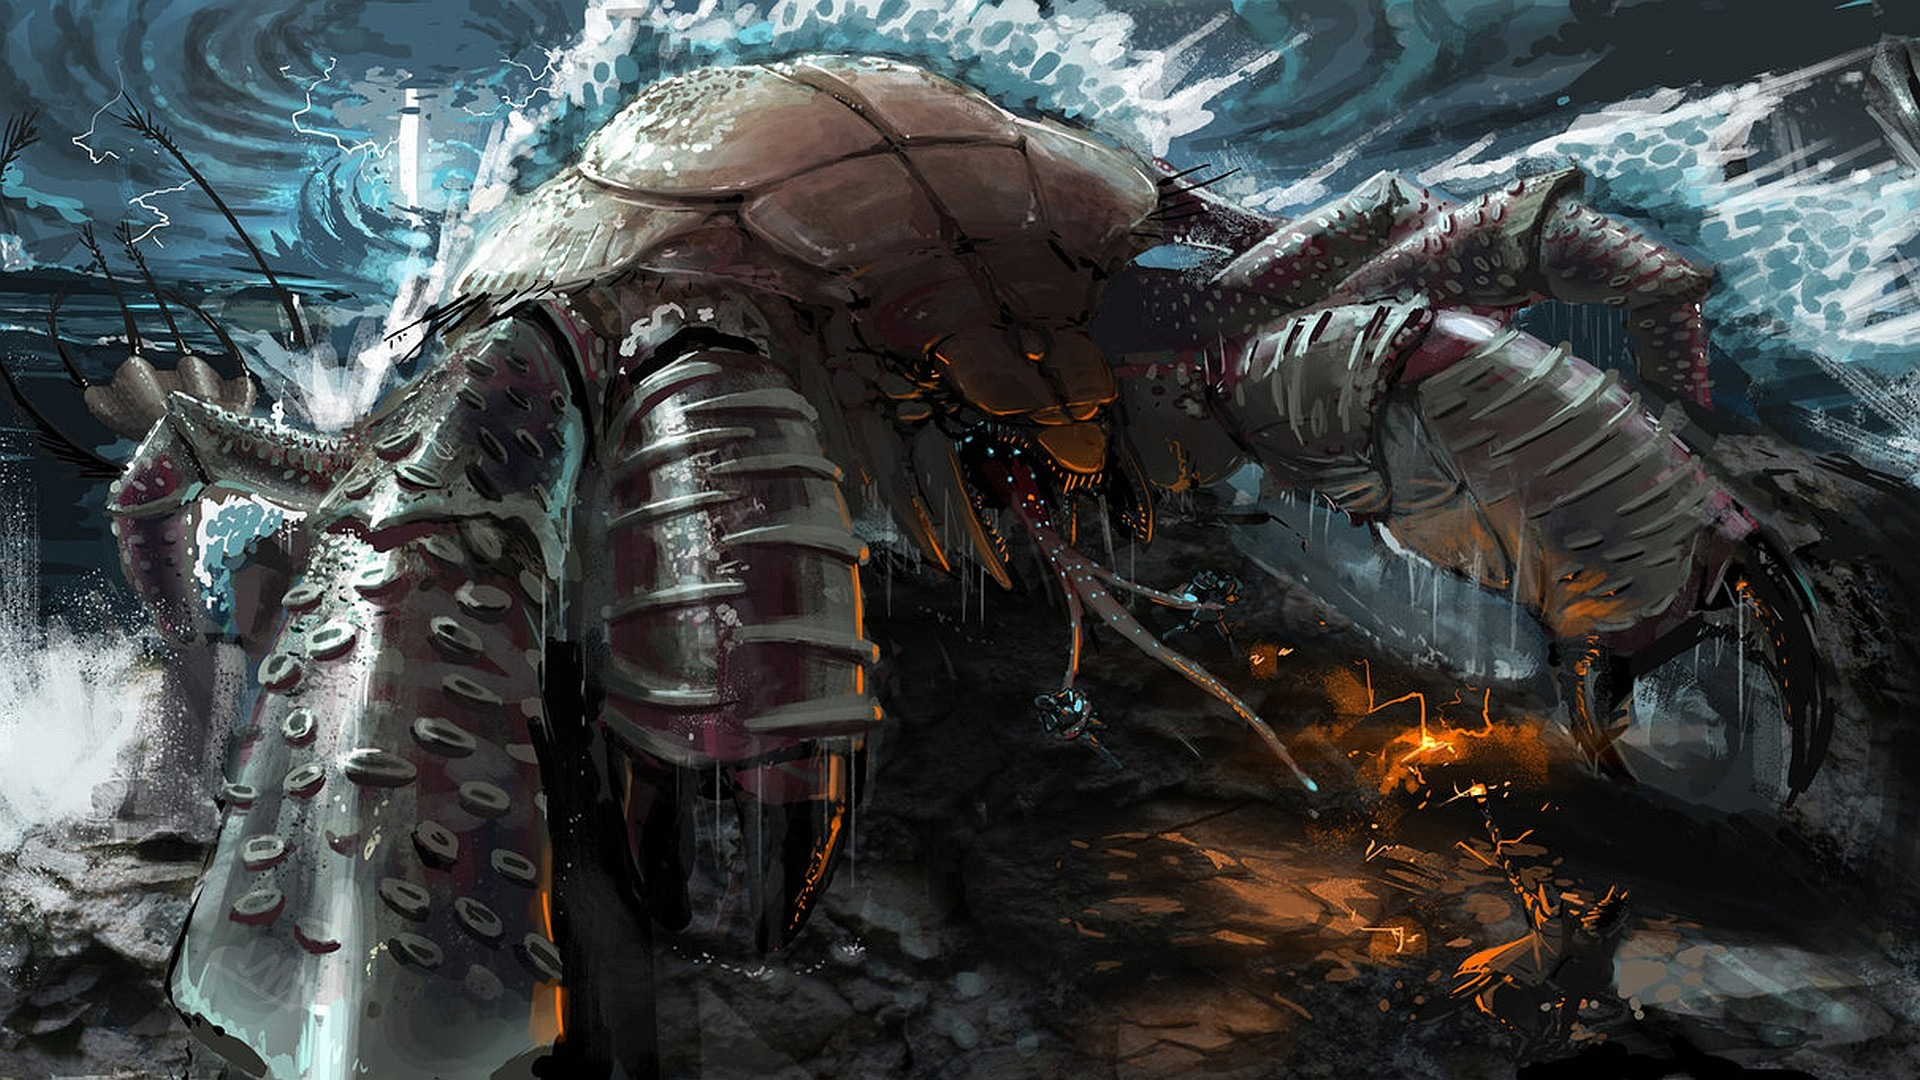 Guia Criaturas Magicas Giant-crab-monster